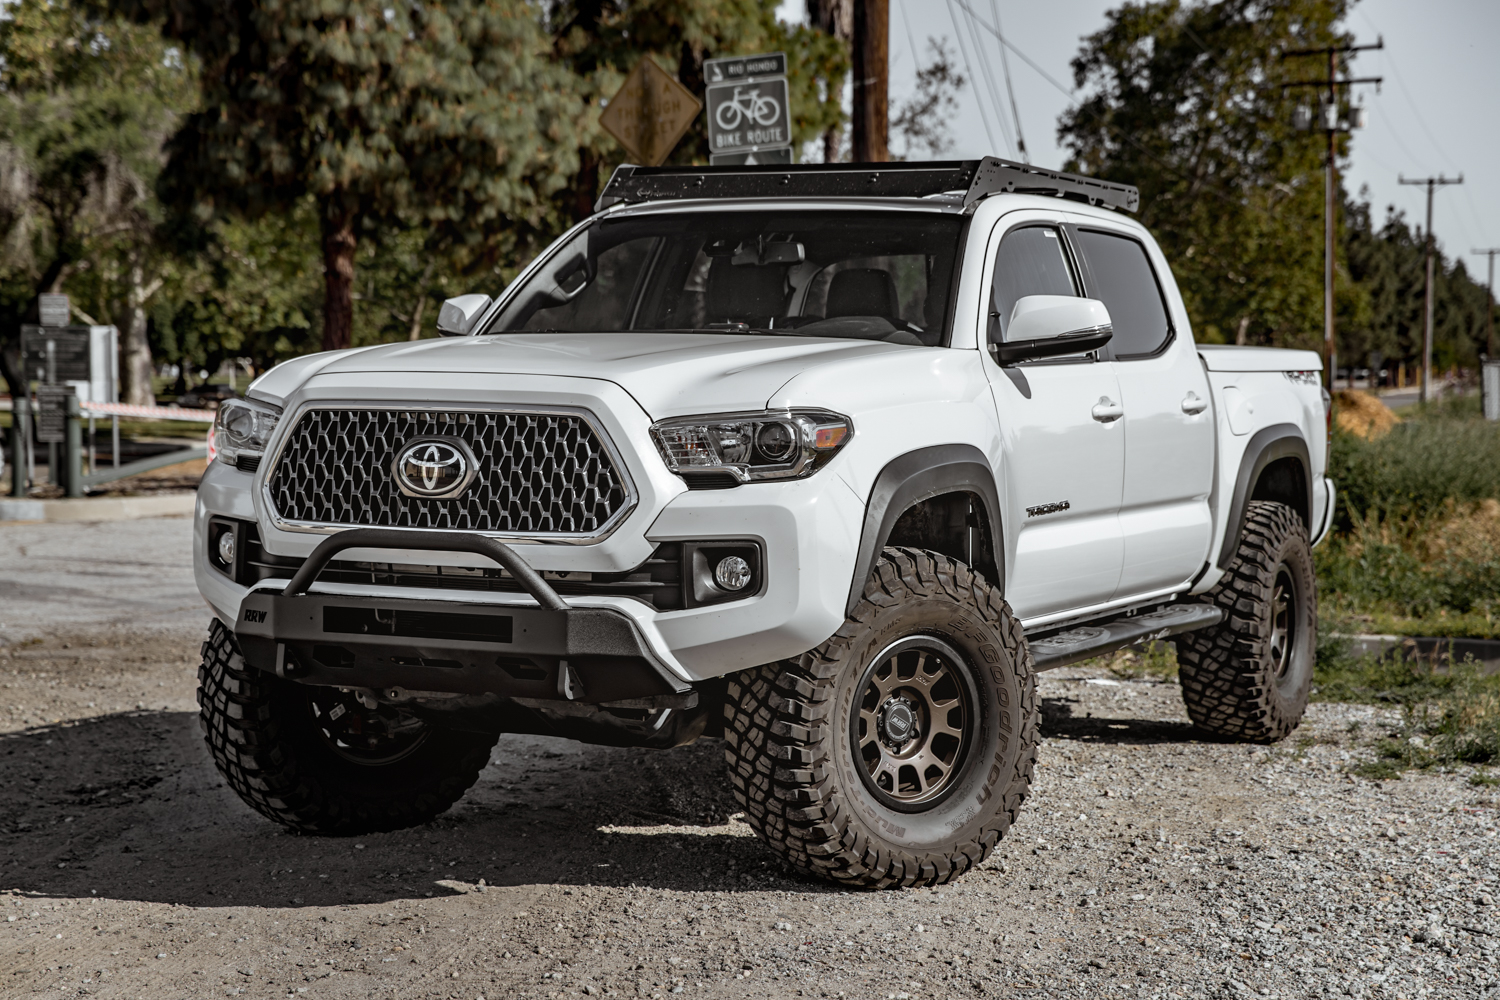 Lifted 3rd Gen Tacoma with Relations Race Wheels (RRW) Low-Profile, Slim Stealth Winch Bumper